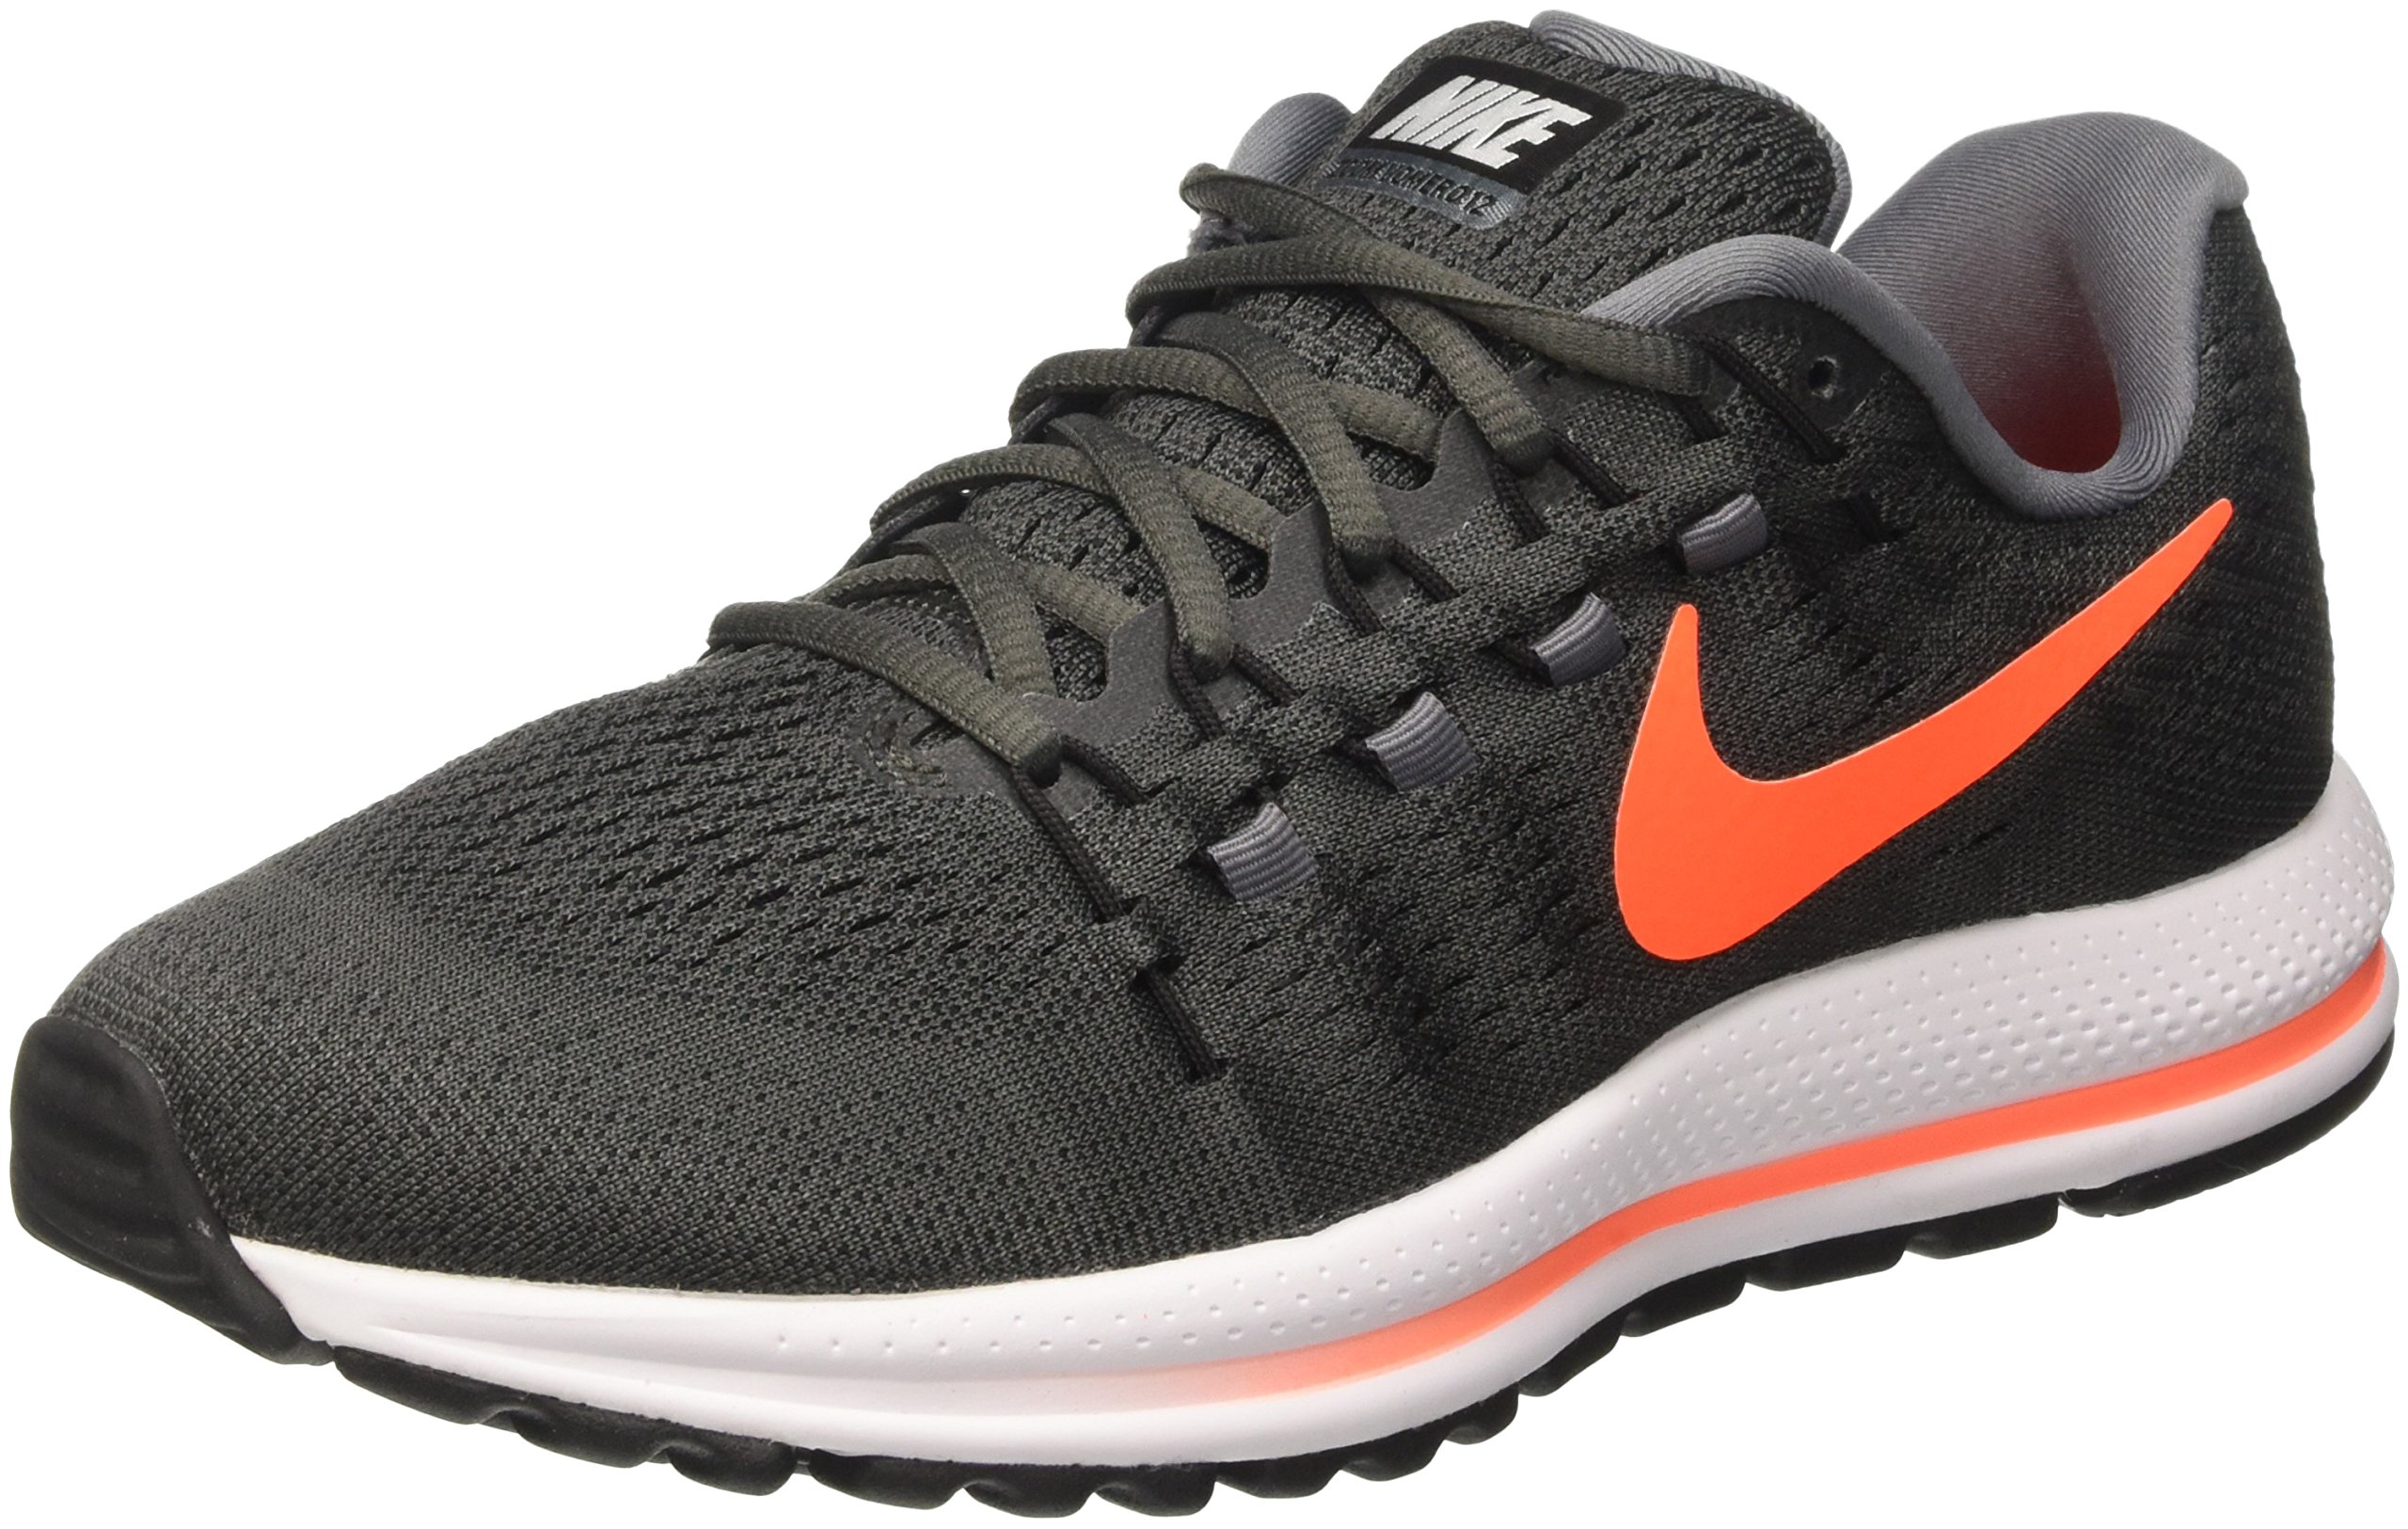 Galleon - NIKE Men s Air Zoom Vomero 12 Running Shoes (8 D(M) US ... eb9d0be2010b